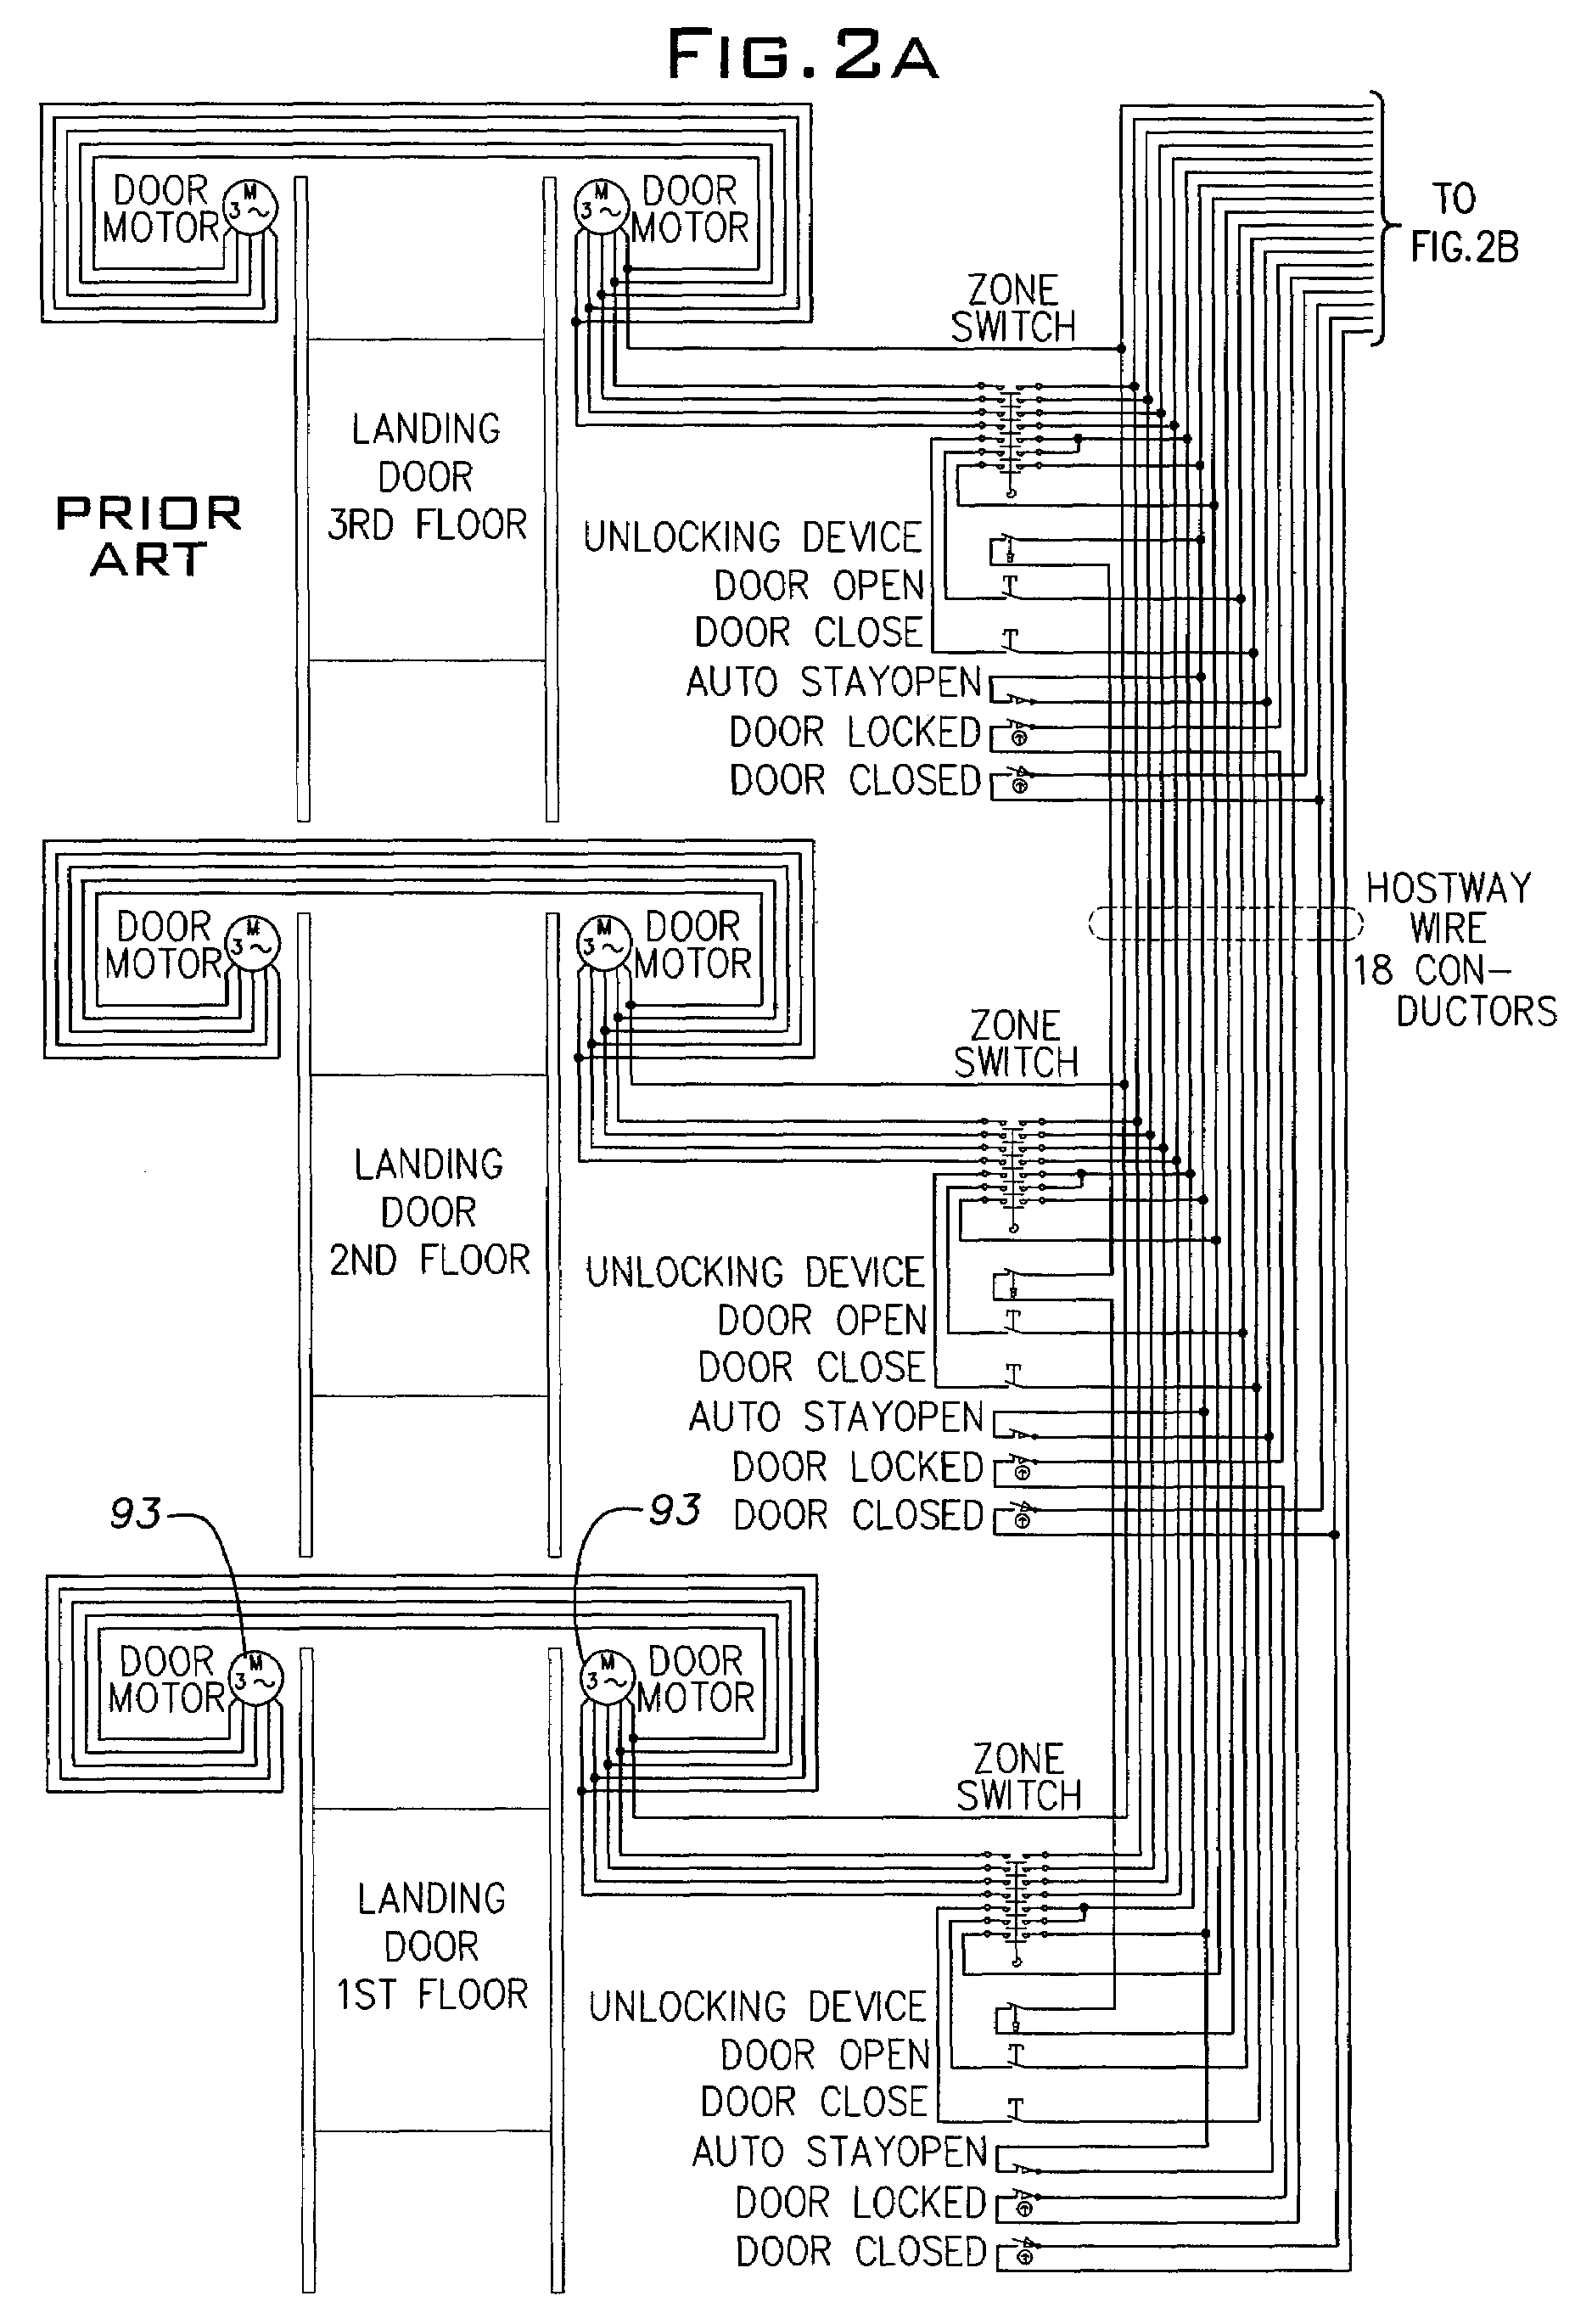 hight resolution of us elevator company wiring schematic wiring diagram category us elevator company wiring schematic